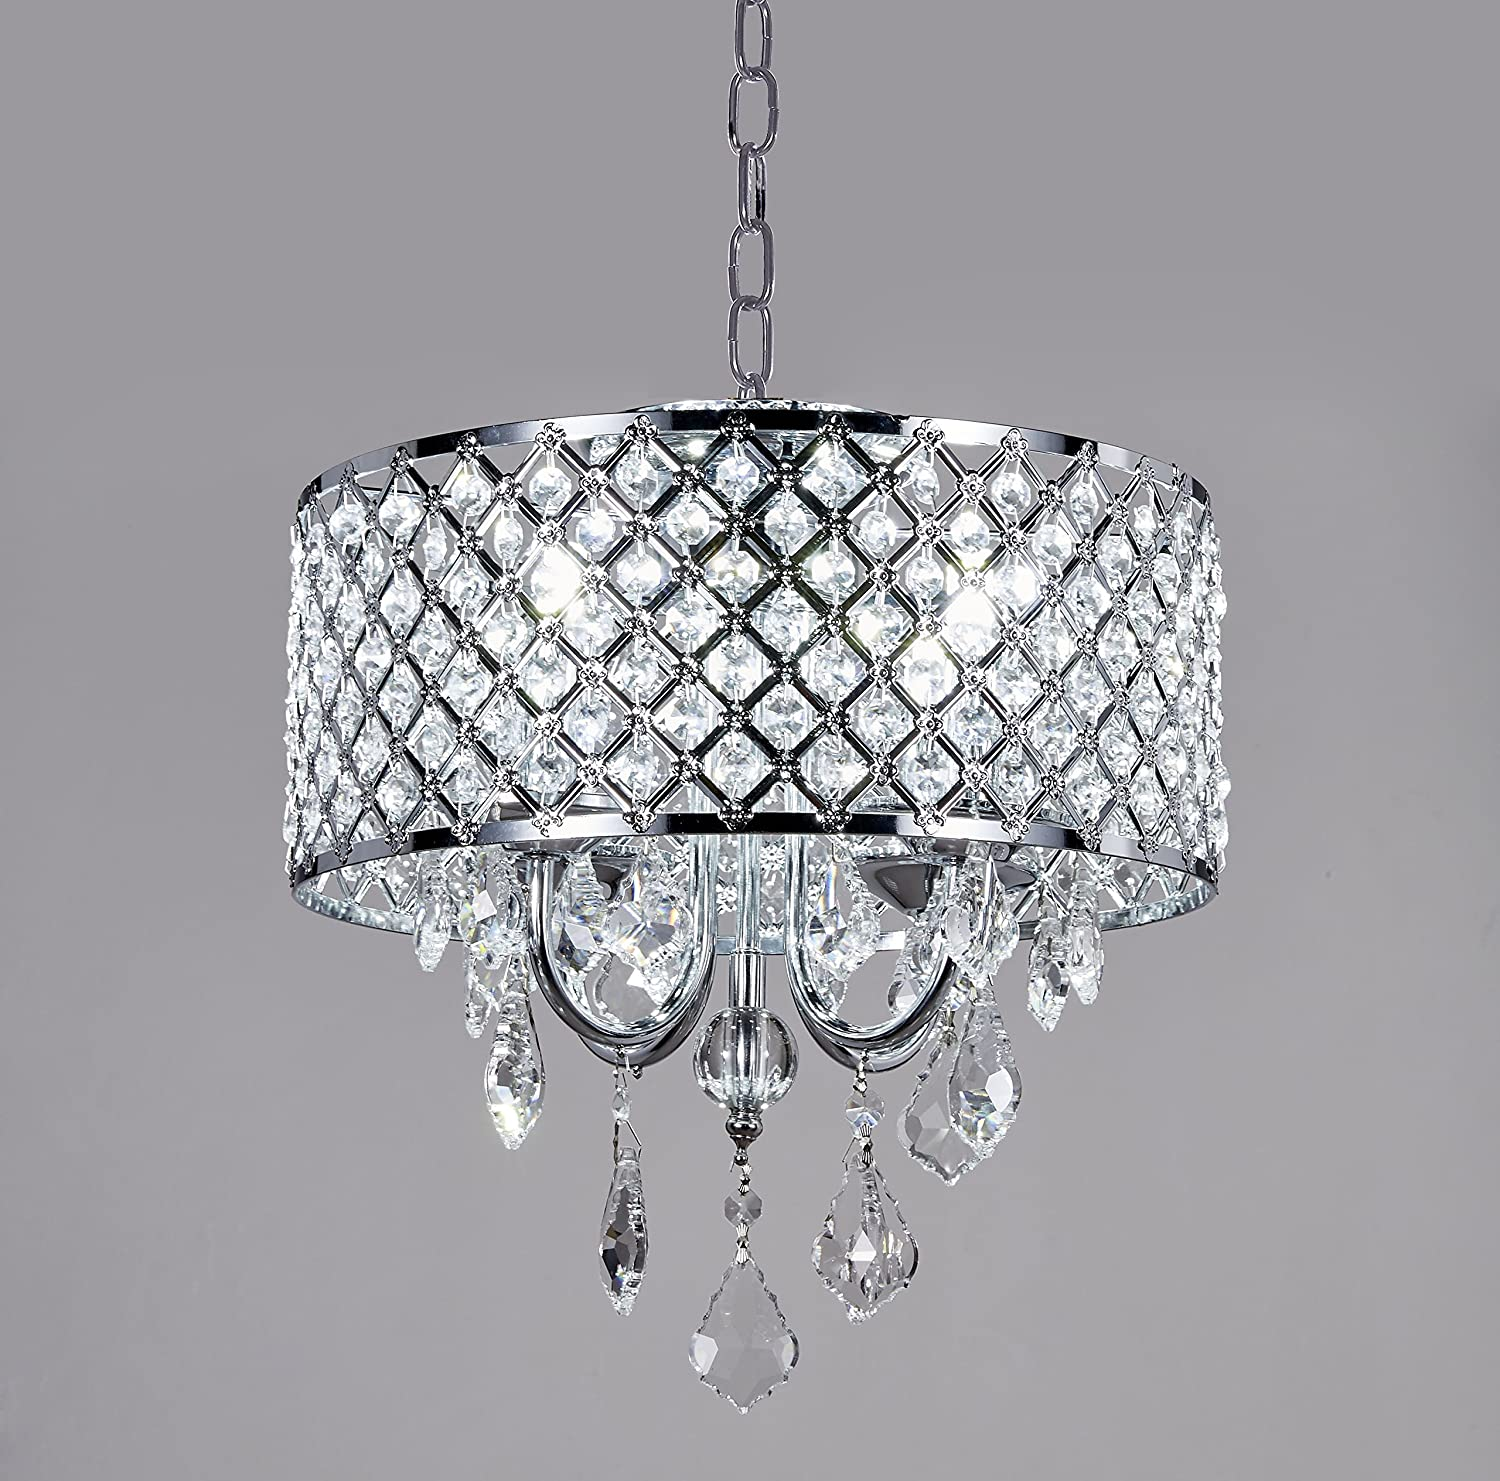 Diamond Life 4-Light Chrome Round Metal Shade Crystal Chandelier Pendant Hanging Ceiling Fixture 101-14i-4L-s